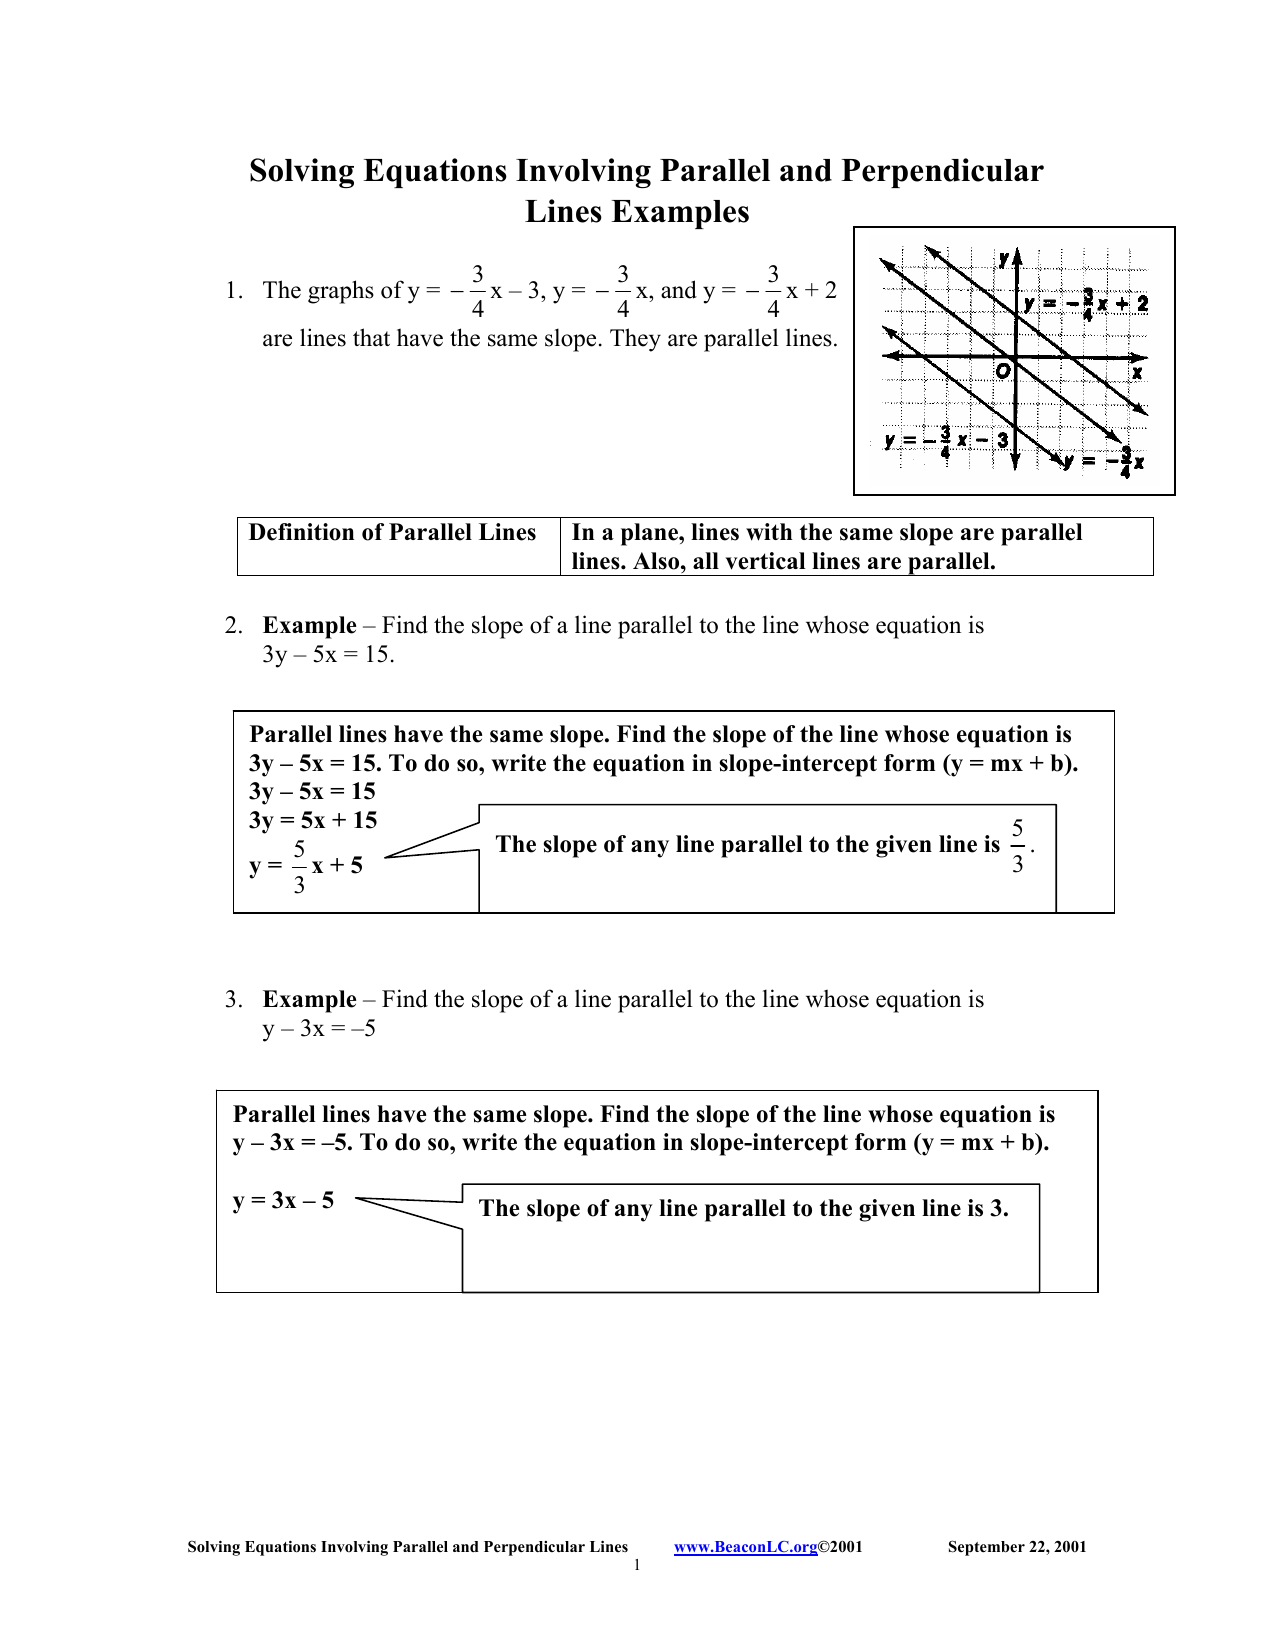 Parallel and Perpendicular Lines by kapixle   Teaching Resources additionally  further This file will contain  Solving Equations Involving Parallel and furthermore Writing Equations Of Parallel And Perpendicular Lines Worksheet Math furthermore Parallel and Perpendicular Lines   YouTube in addition parallel and perpendicular worksheets – albertcoward co additionally  furthermore Equation of a Straight Line Worksheet   Worksheets   graphs further  also  besides Parallel and Perpendicular Lines Resources   Tes as well Writing Equations From Graphs Worksheet Beautiful Graph Parallel and in addition Parallel lines have the same slope while the slope of perpendicular further Perpendicular Equations Math Math Worksheets Go Ii Practice Linear in addition  furthermore GCSE Maths   Equations of Parallel and Perpendicular Lines  by. on equations of perpendicular lines worksheet